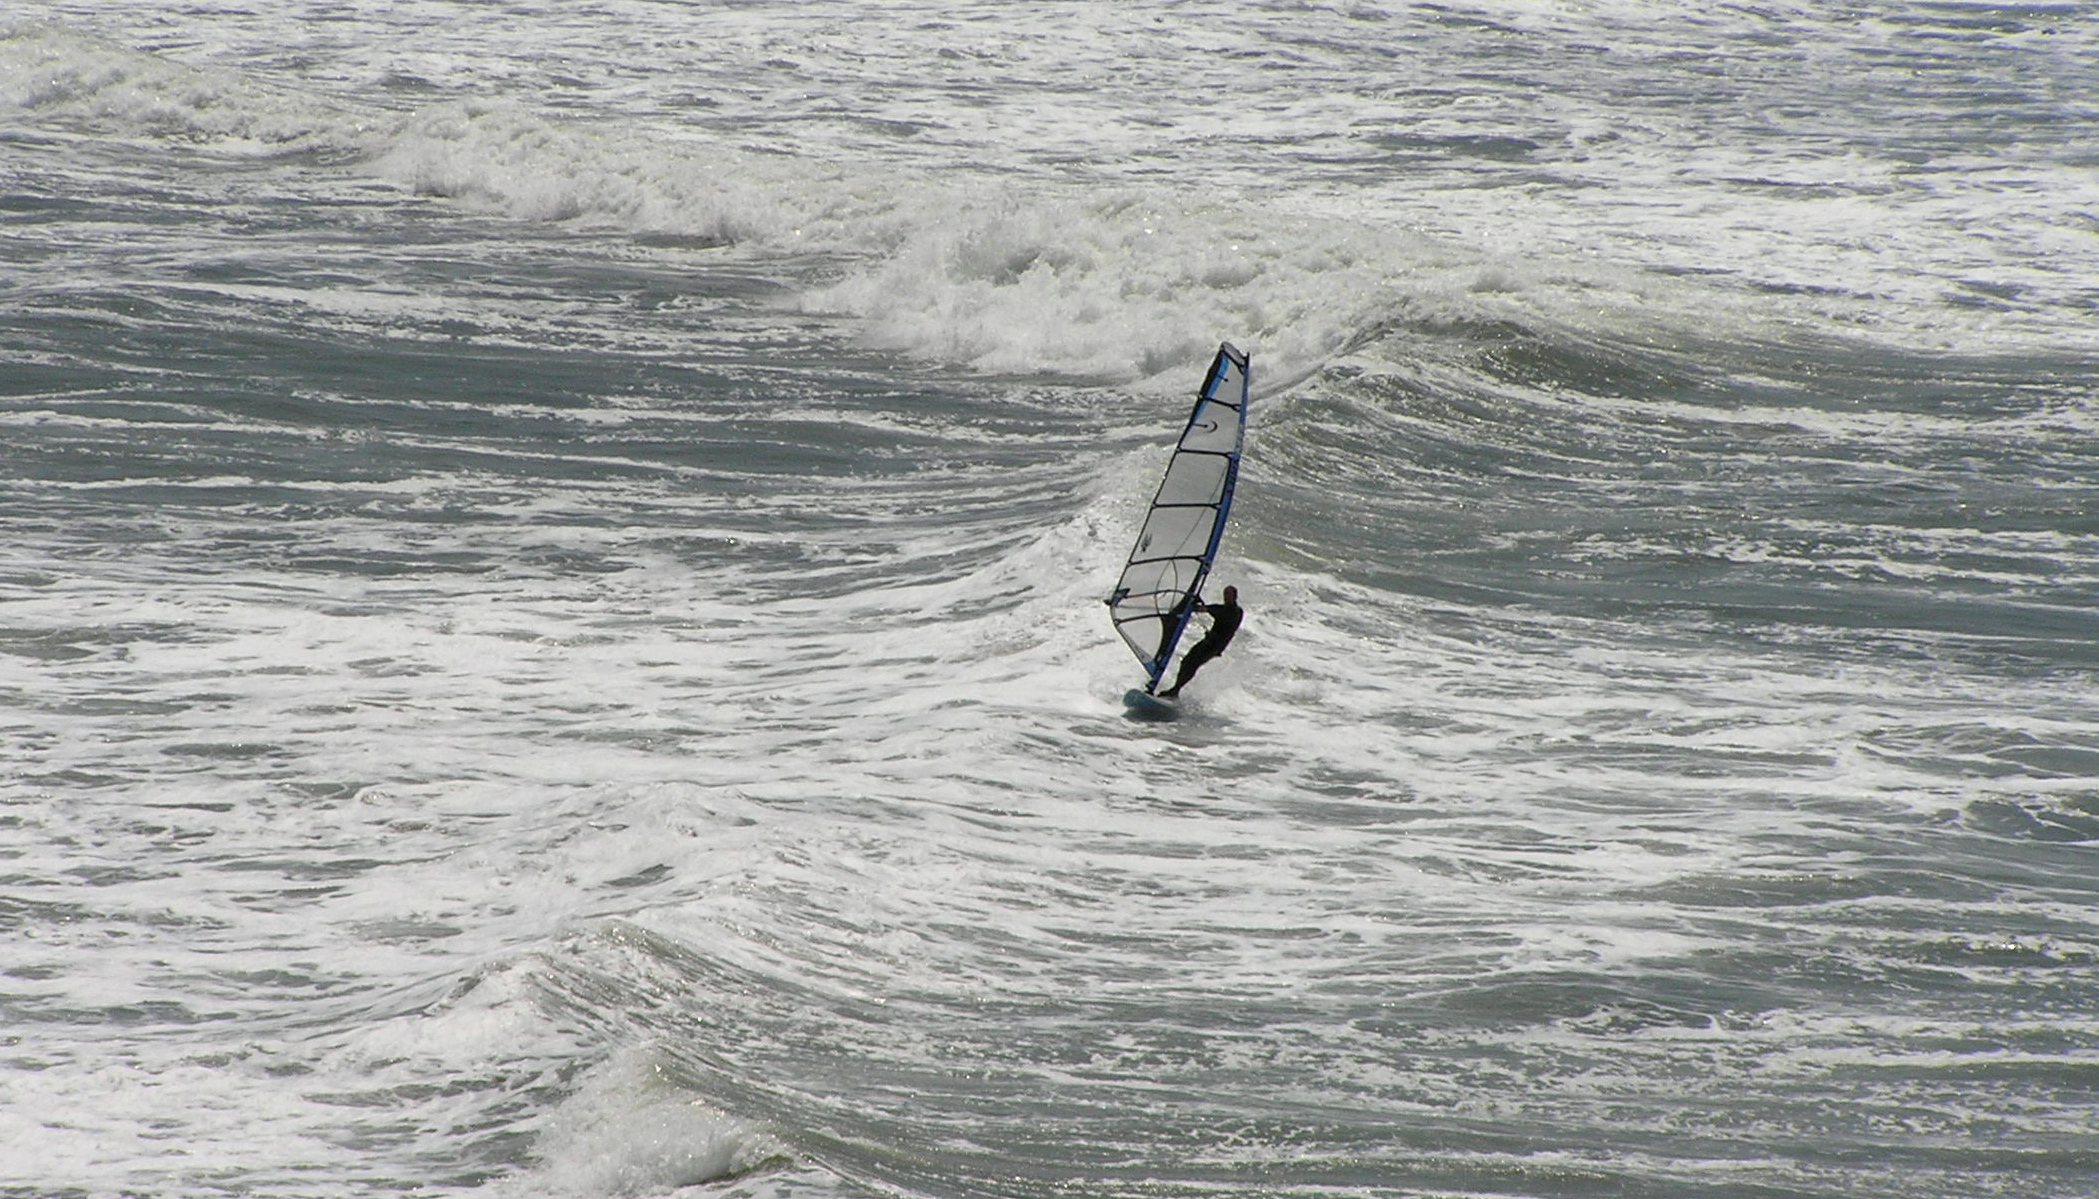 Windsurfing at Ocean Beach